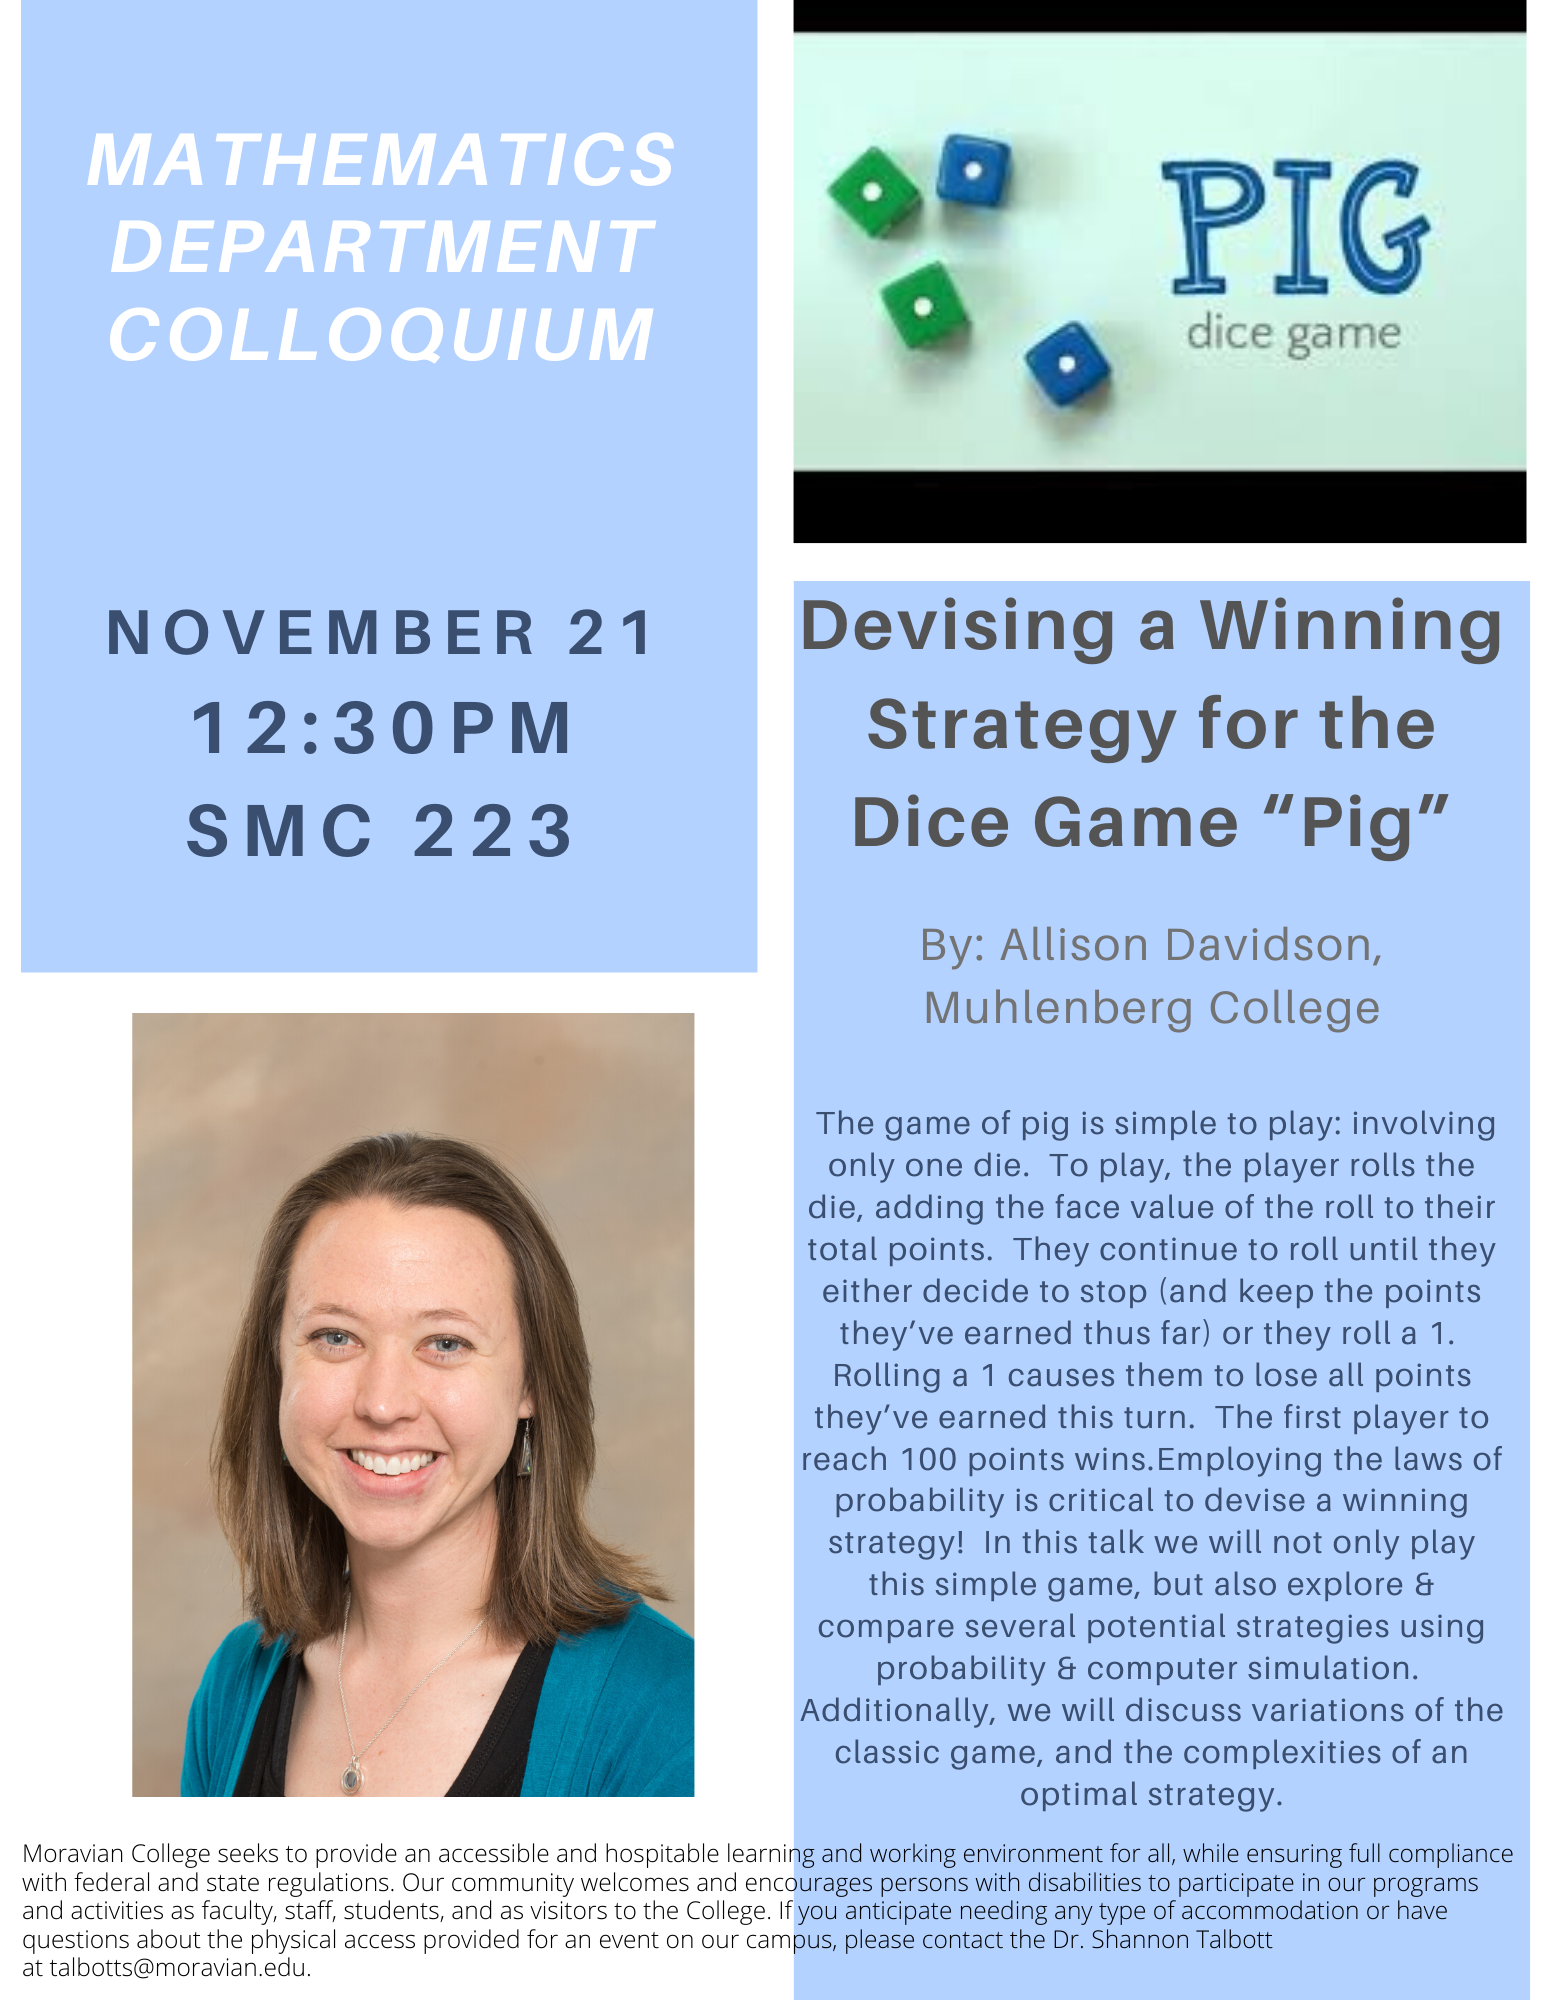 Image of flyer for PIG game colloquium with dice and speaker image